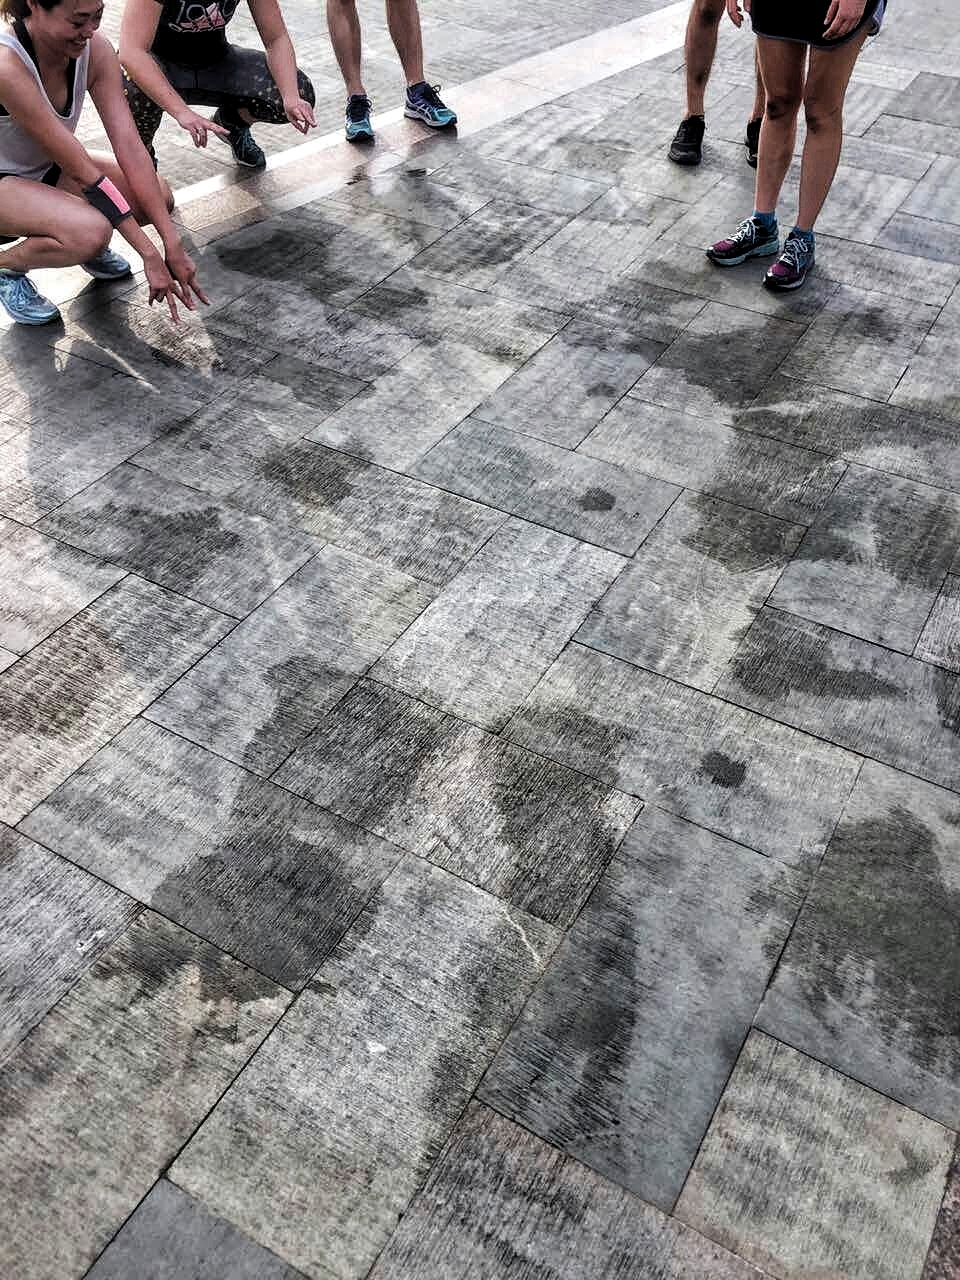 The 'Empty Streets' running crew leaving their mark!